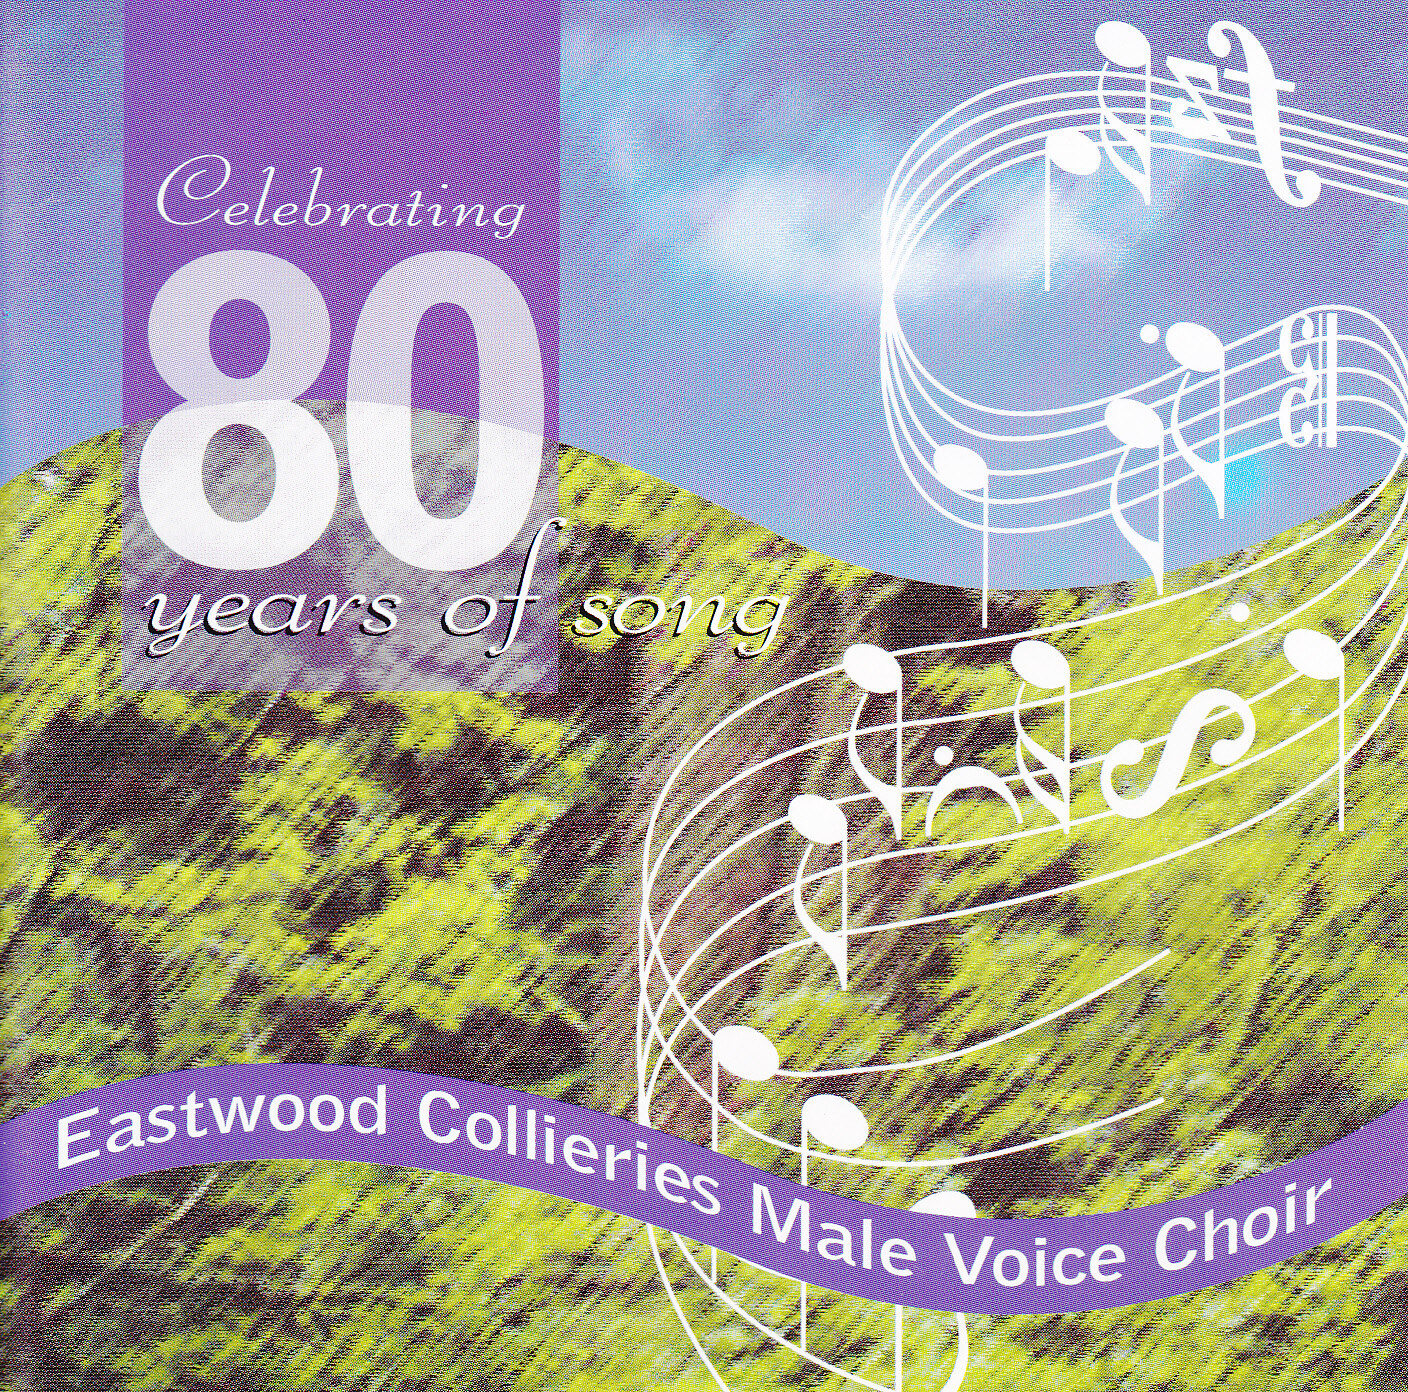 80 Years of Song